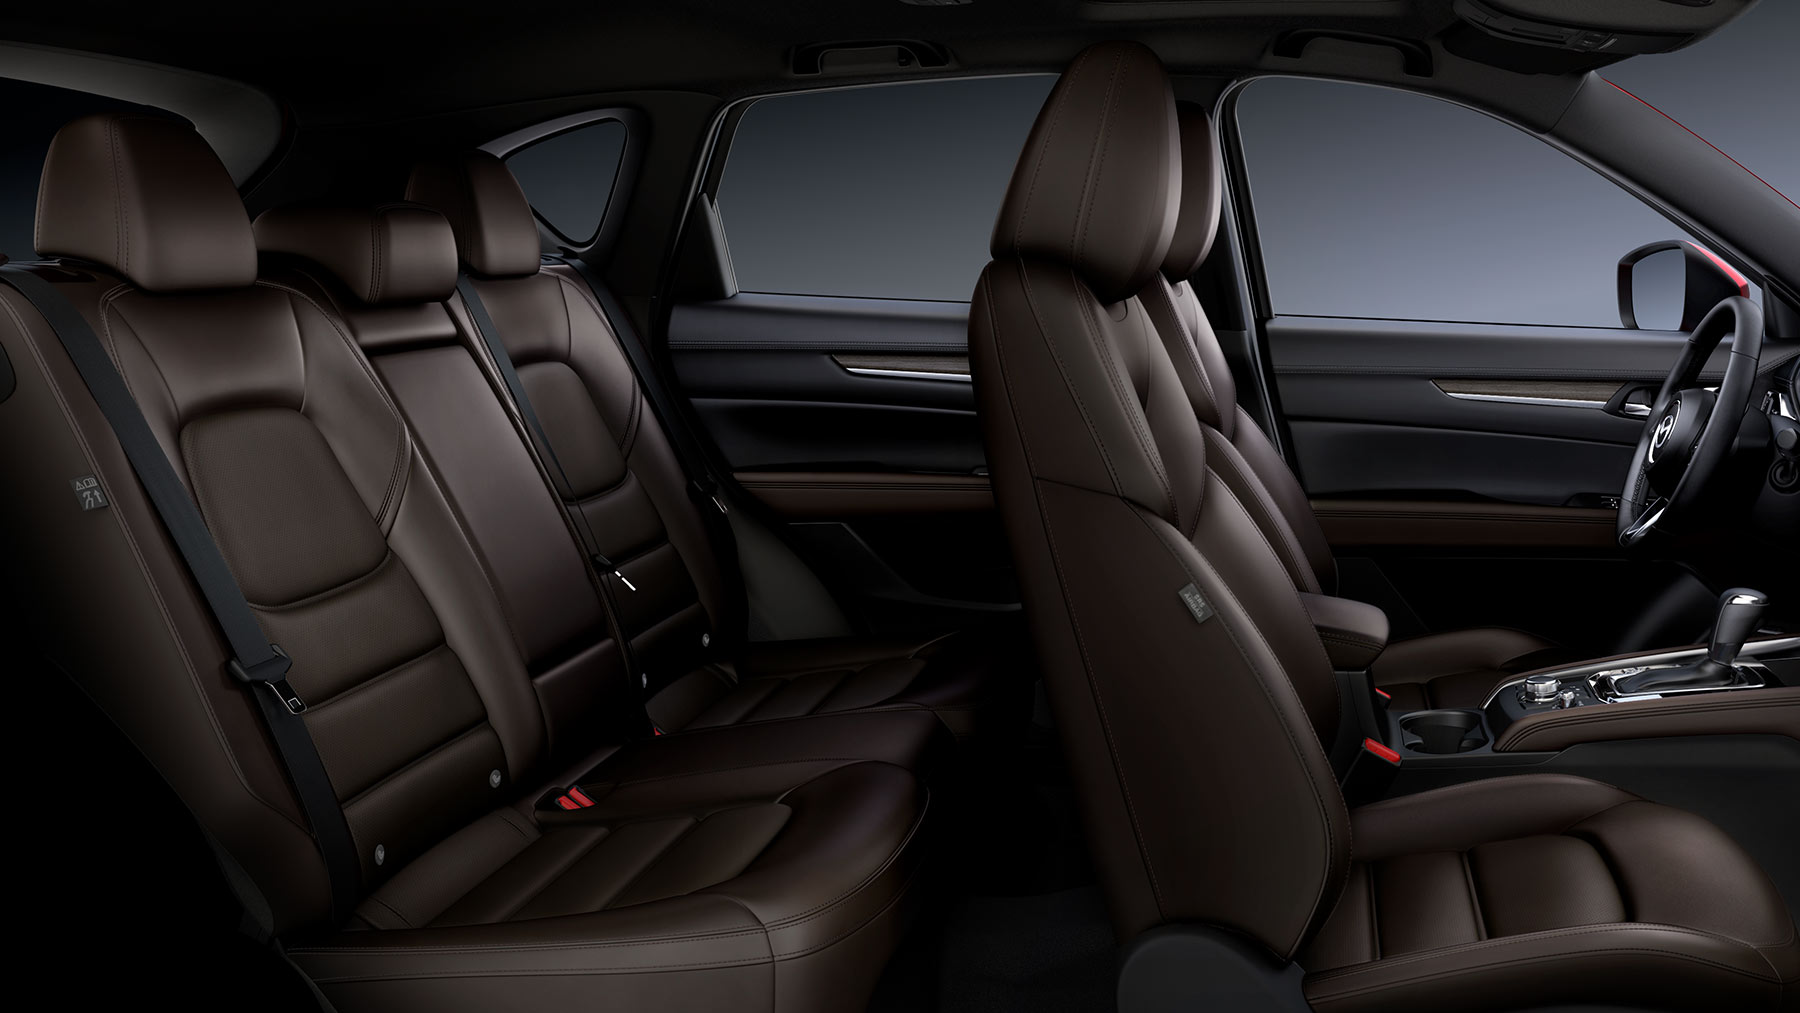 Luxurious Seating Options of the Mazda CX-5